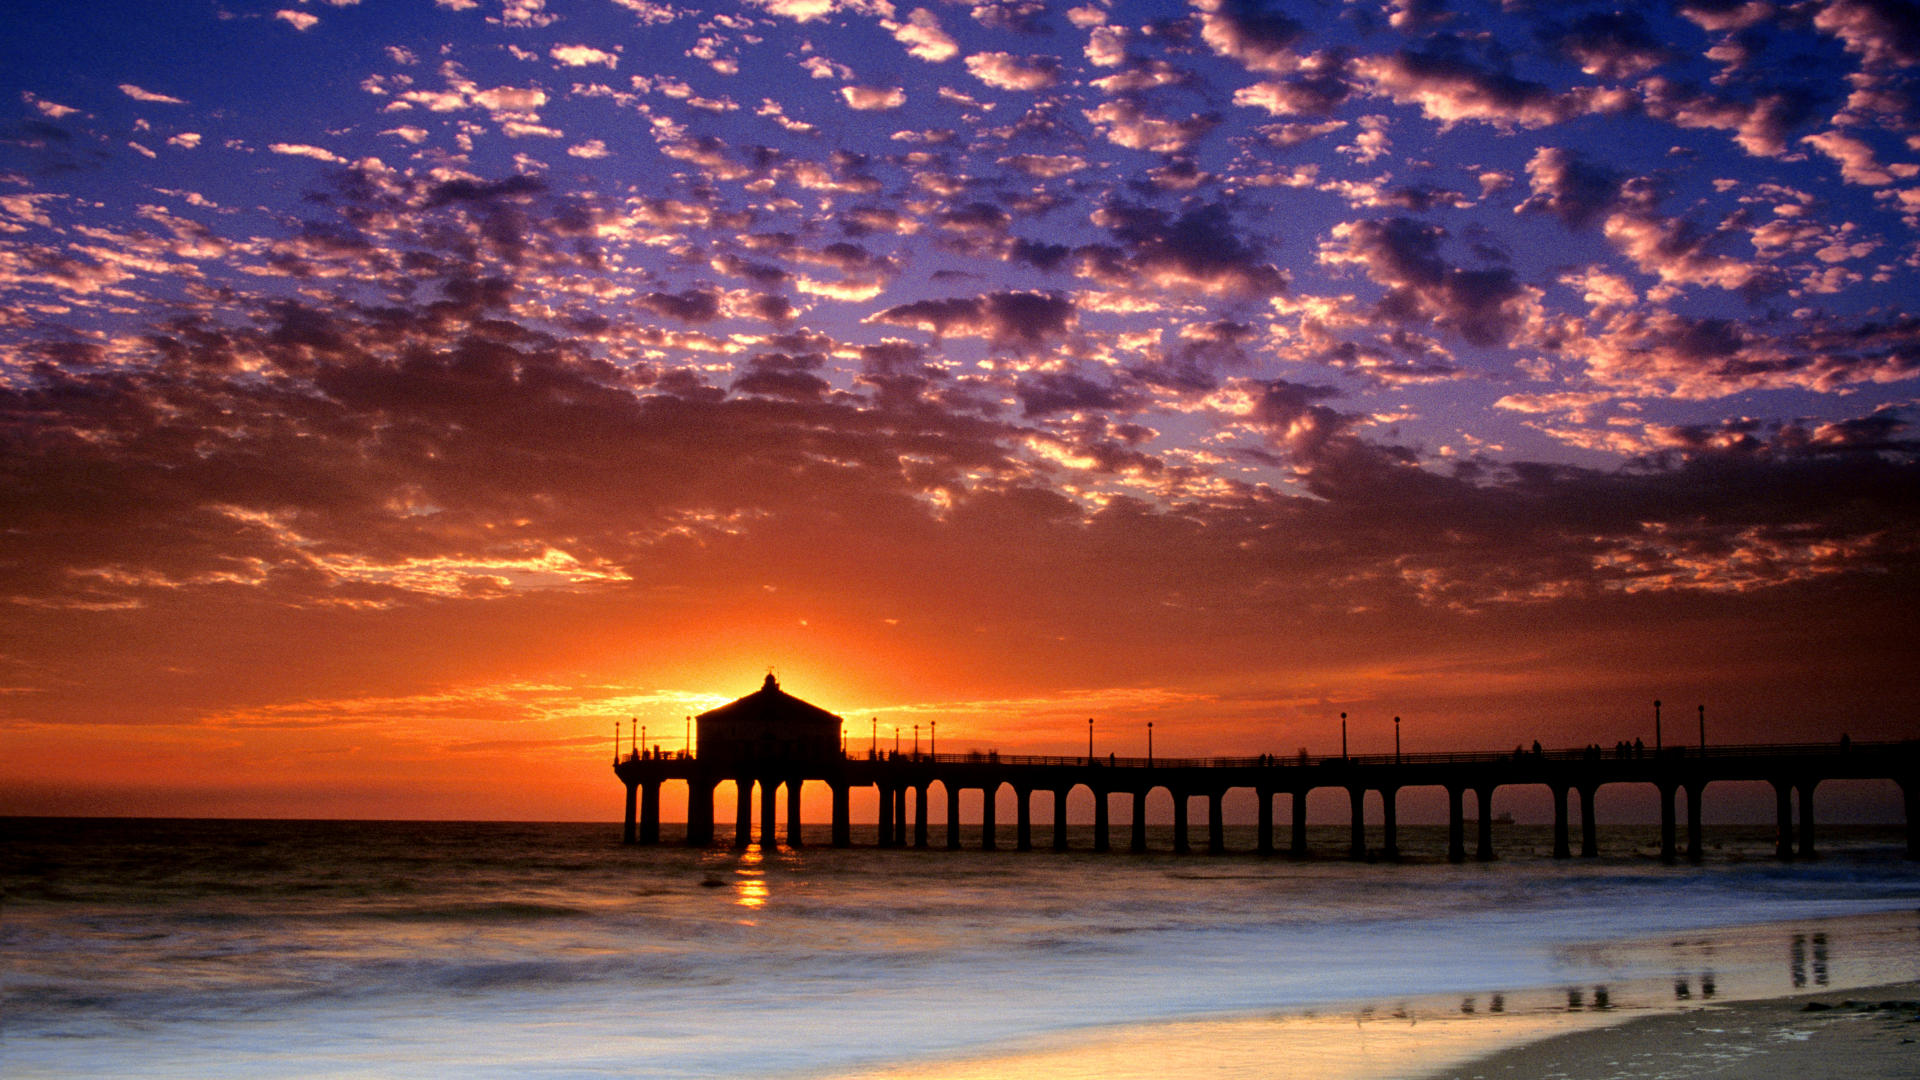 wallpapers california beach colorful sky manhattan backgrounds 1920x1080